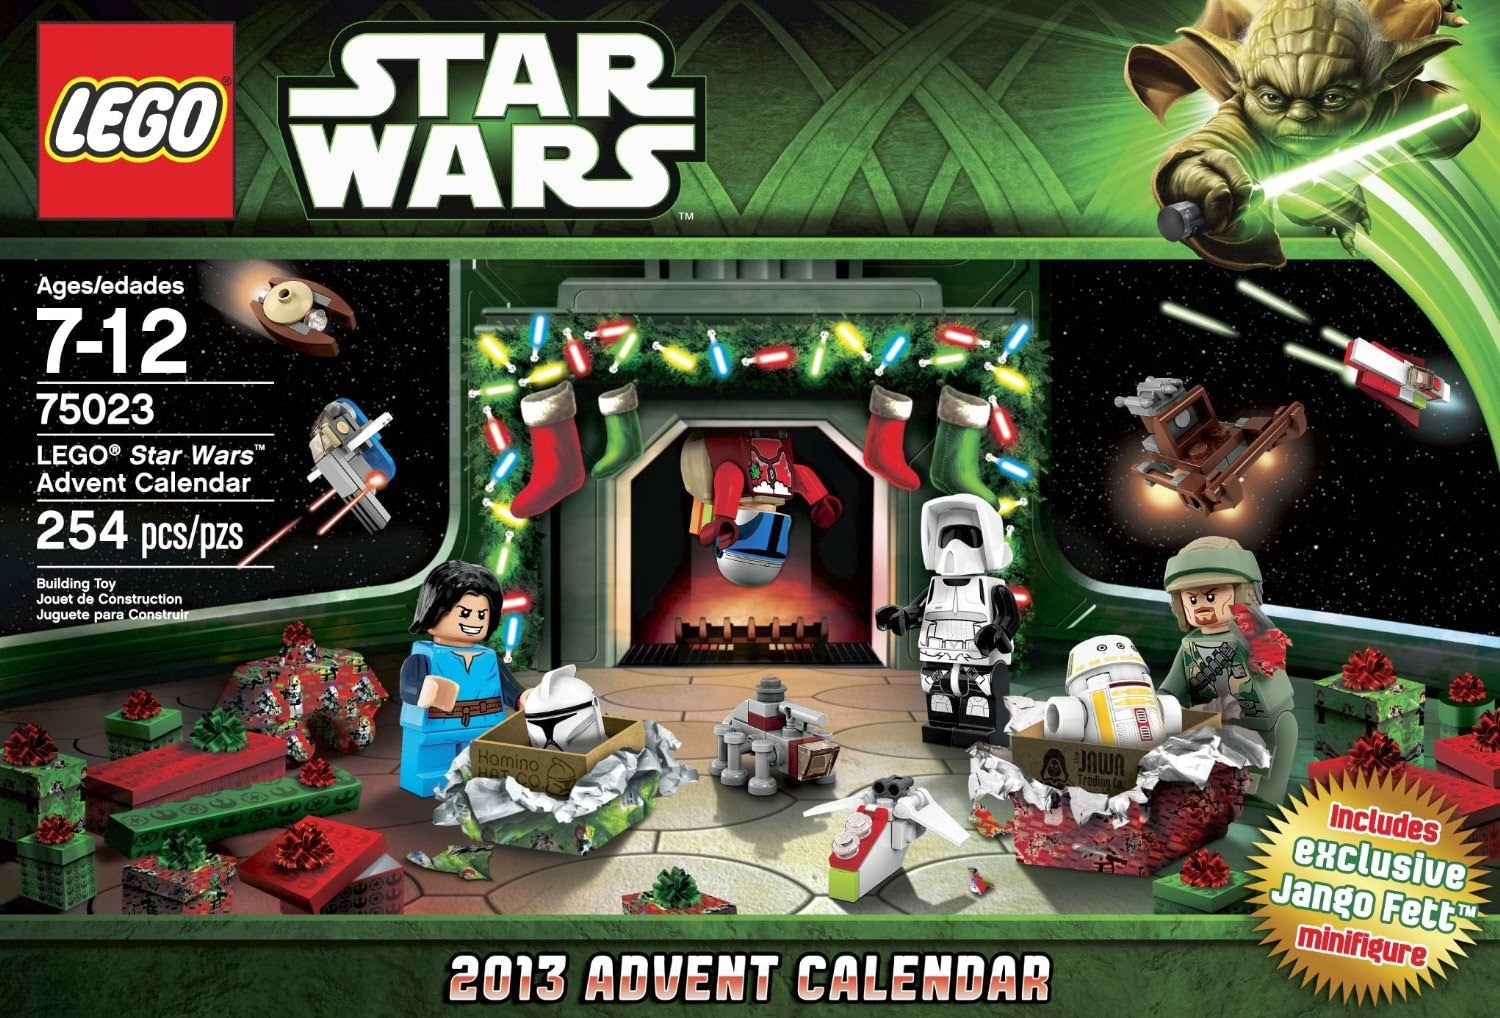 Top 10 Christmas Toys 2013 : Lego star wars advent calendar best and top toys